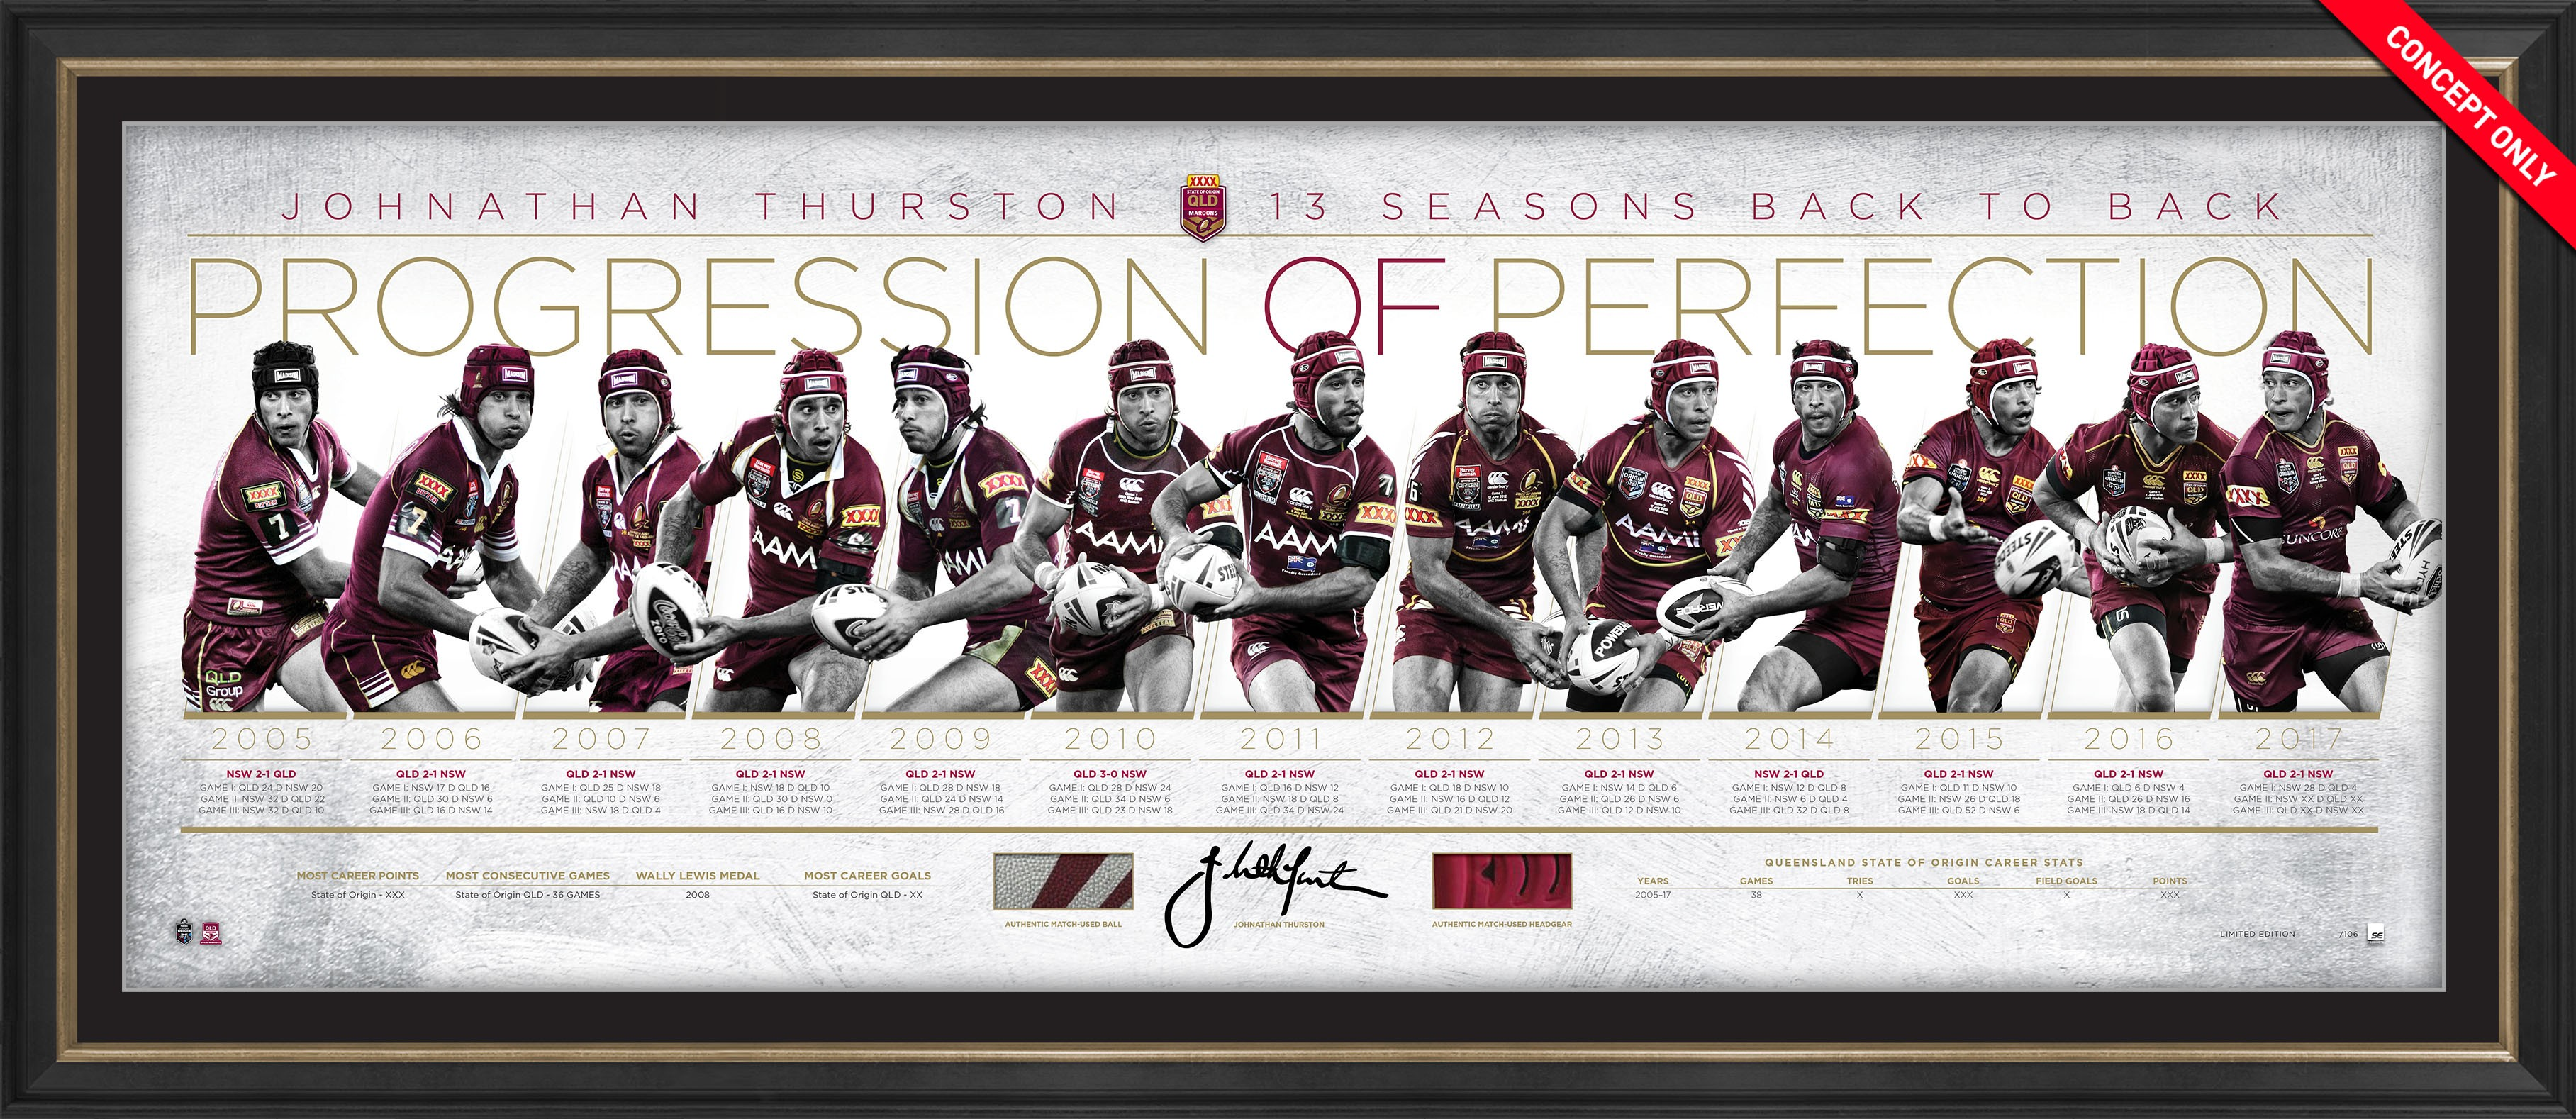 'Progression of Perfection' Johnathan Thurston State of Origin Career Retrospective Lithograph